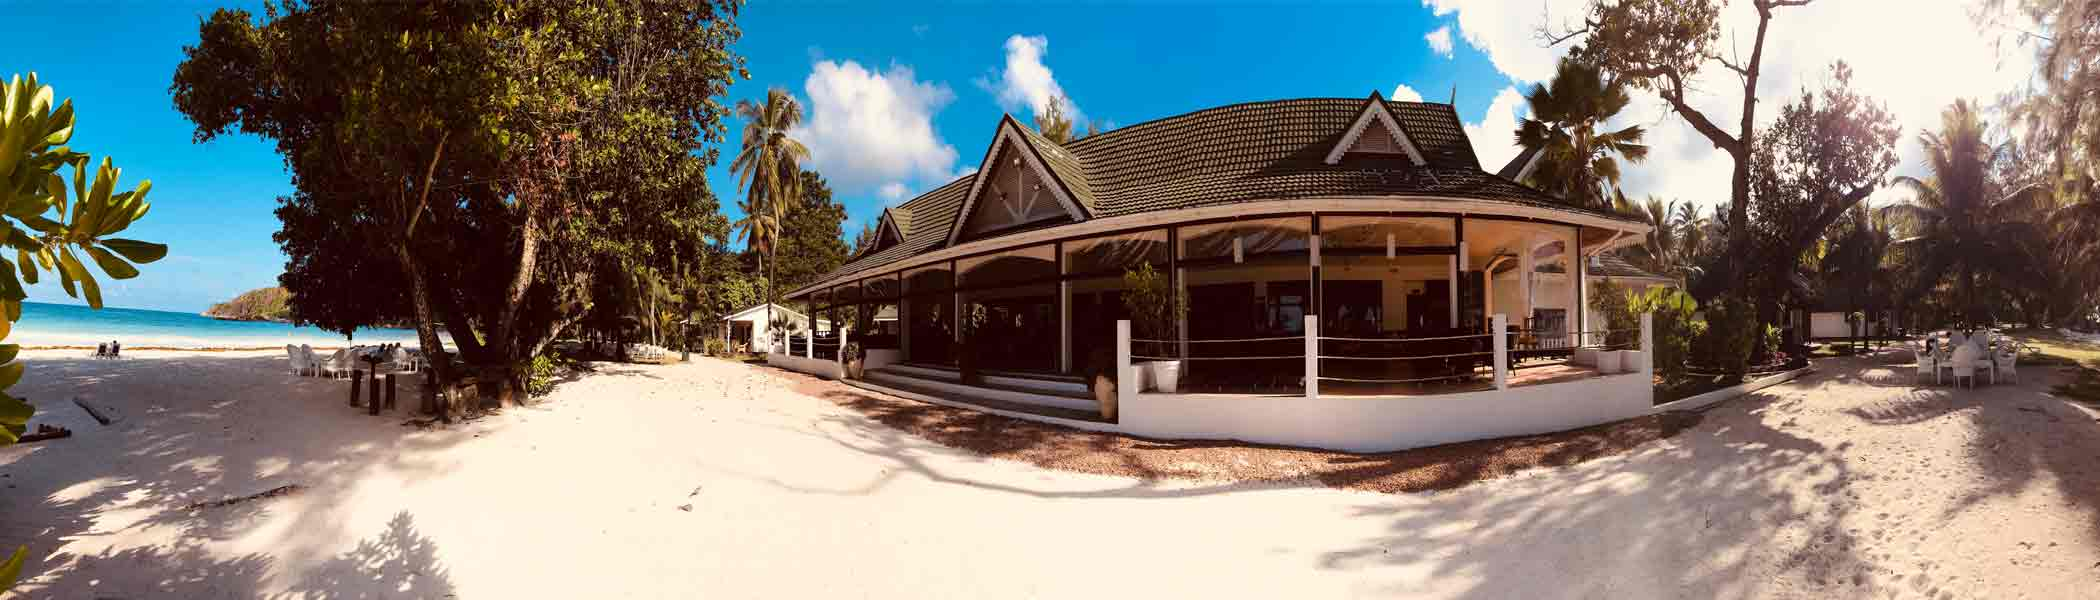 cote-dor-lodge, Hotels in Seychelles Islands